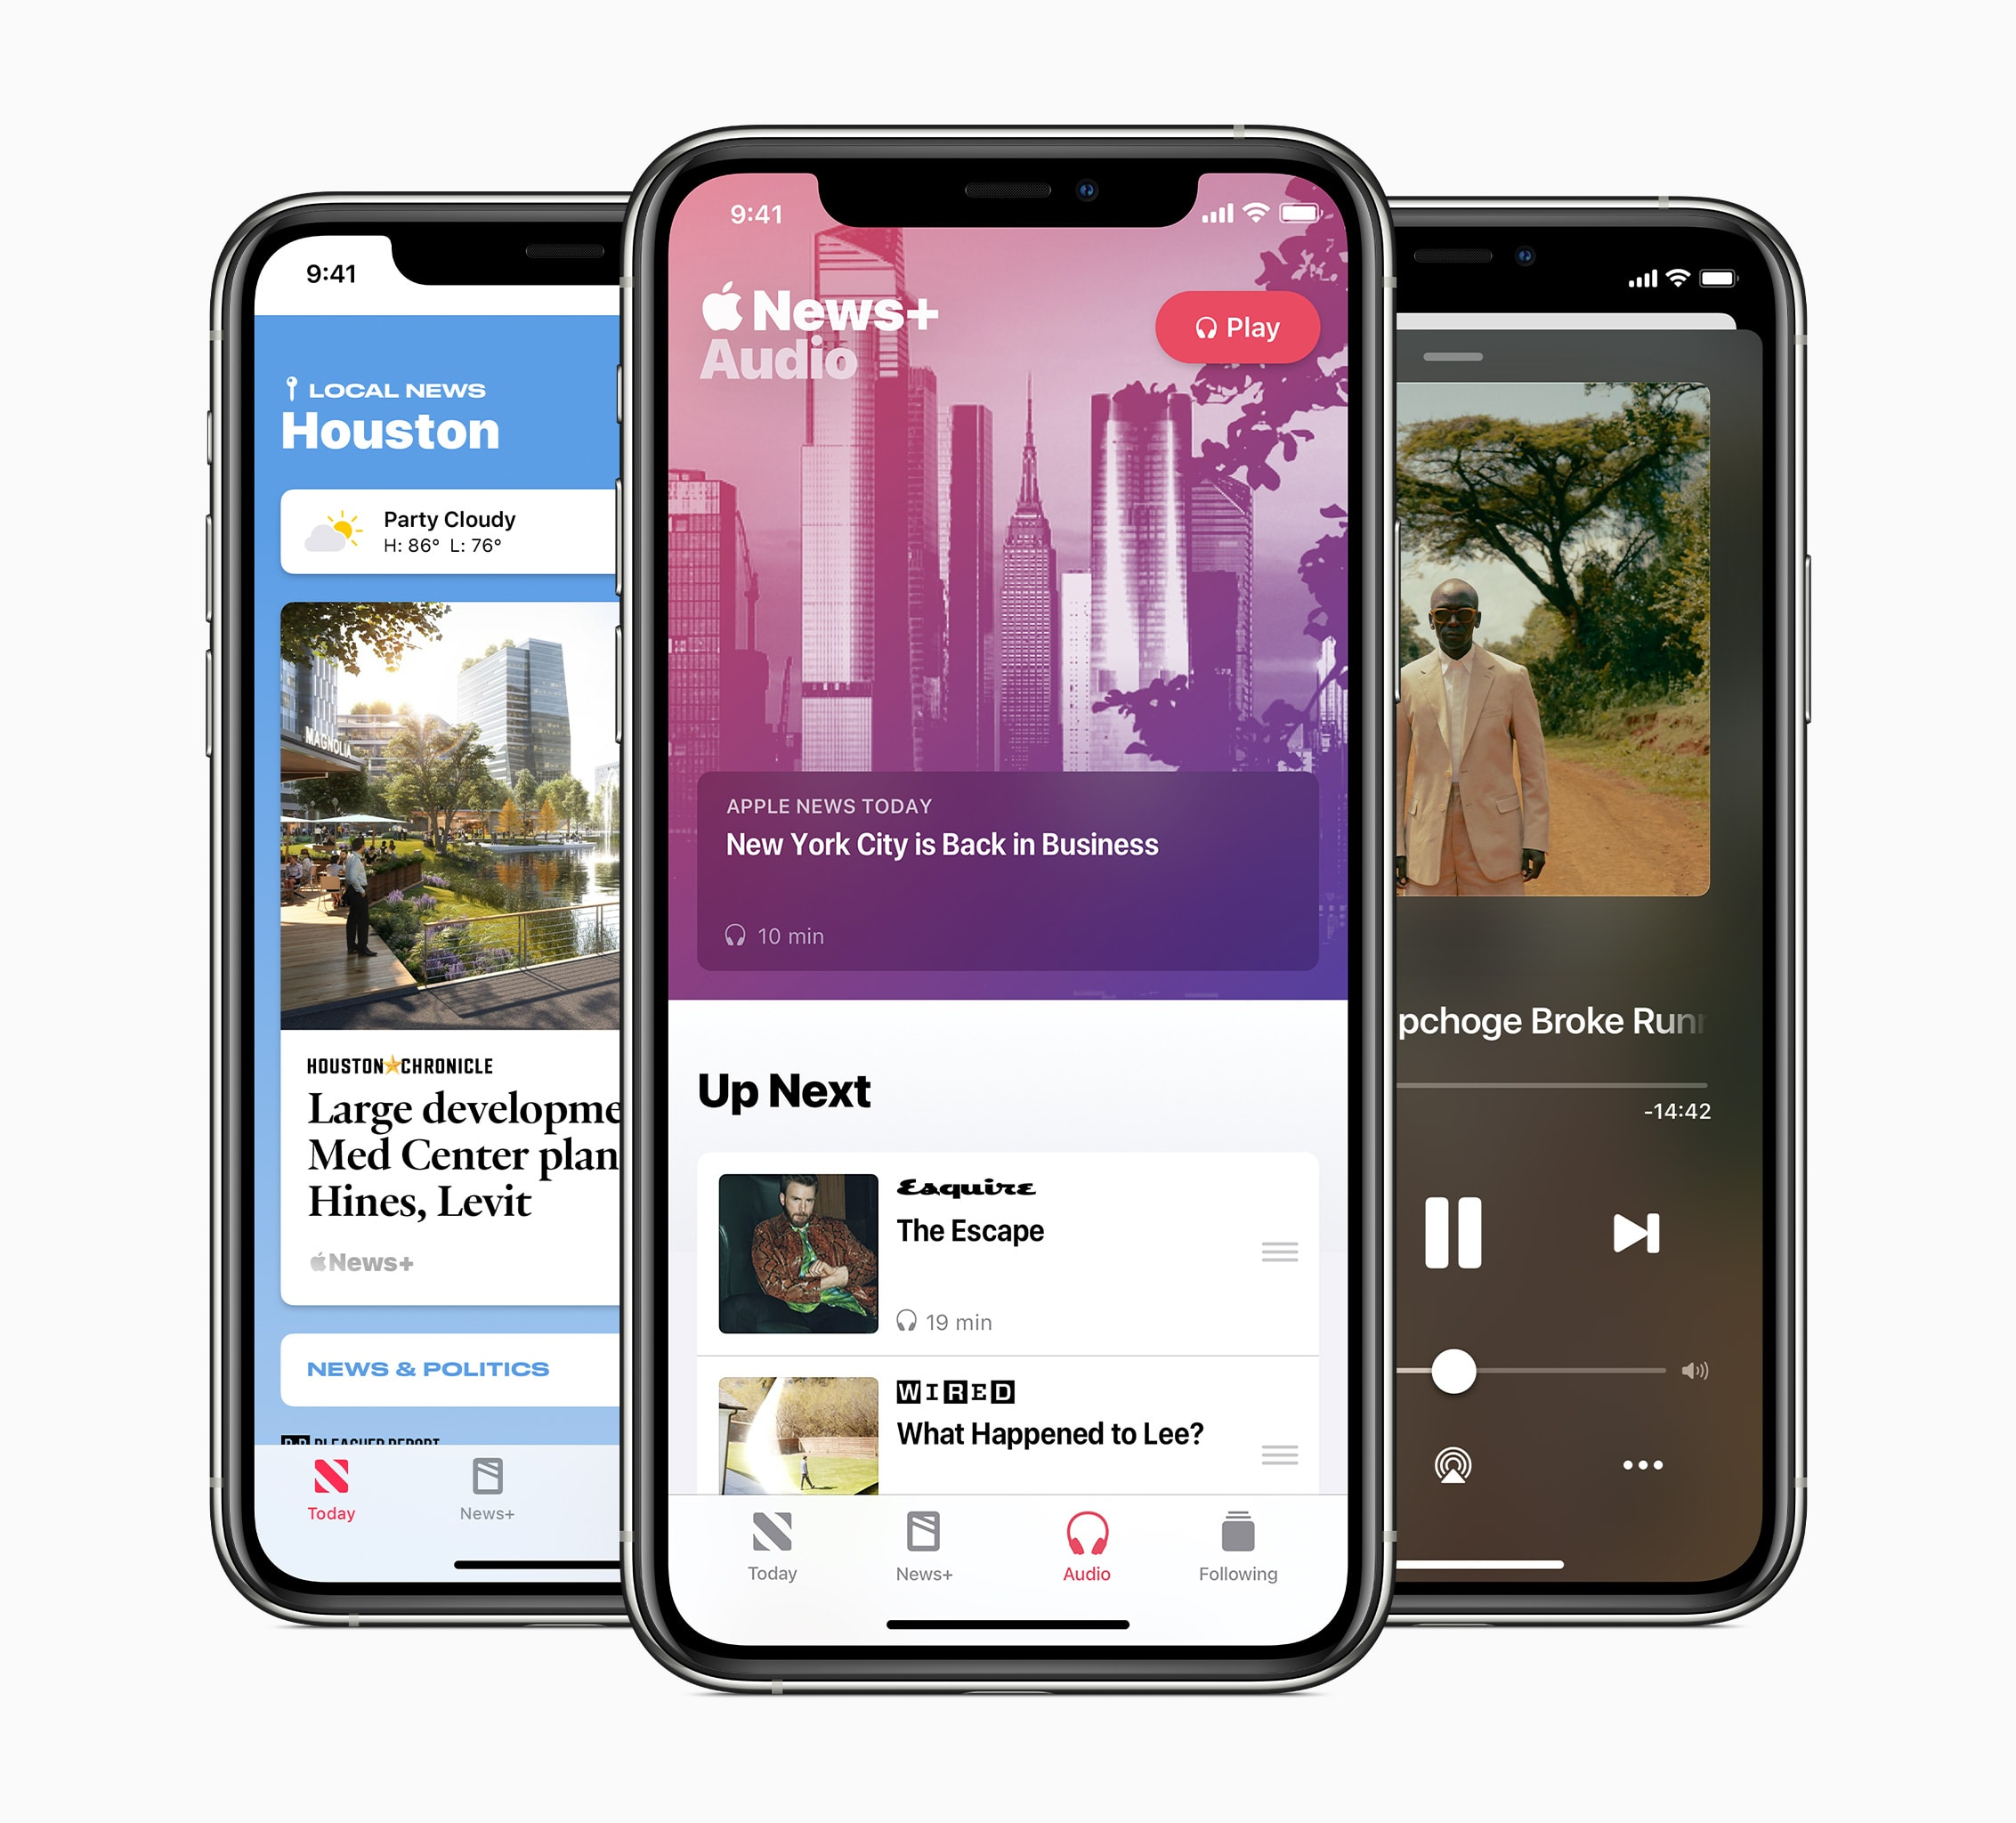 Apple News Today lives in the News app's audio tab in iOS 13.6.